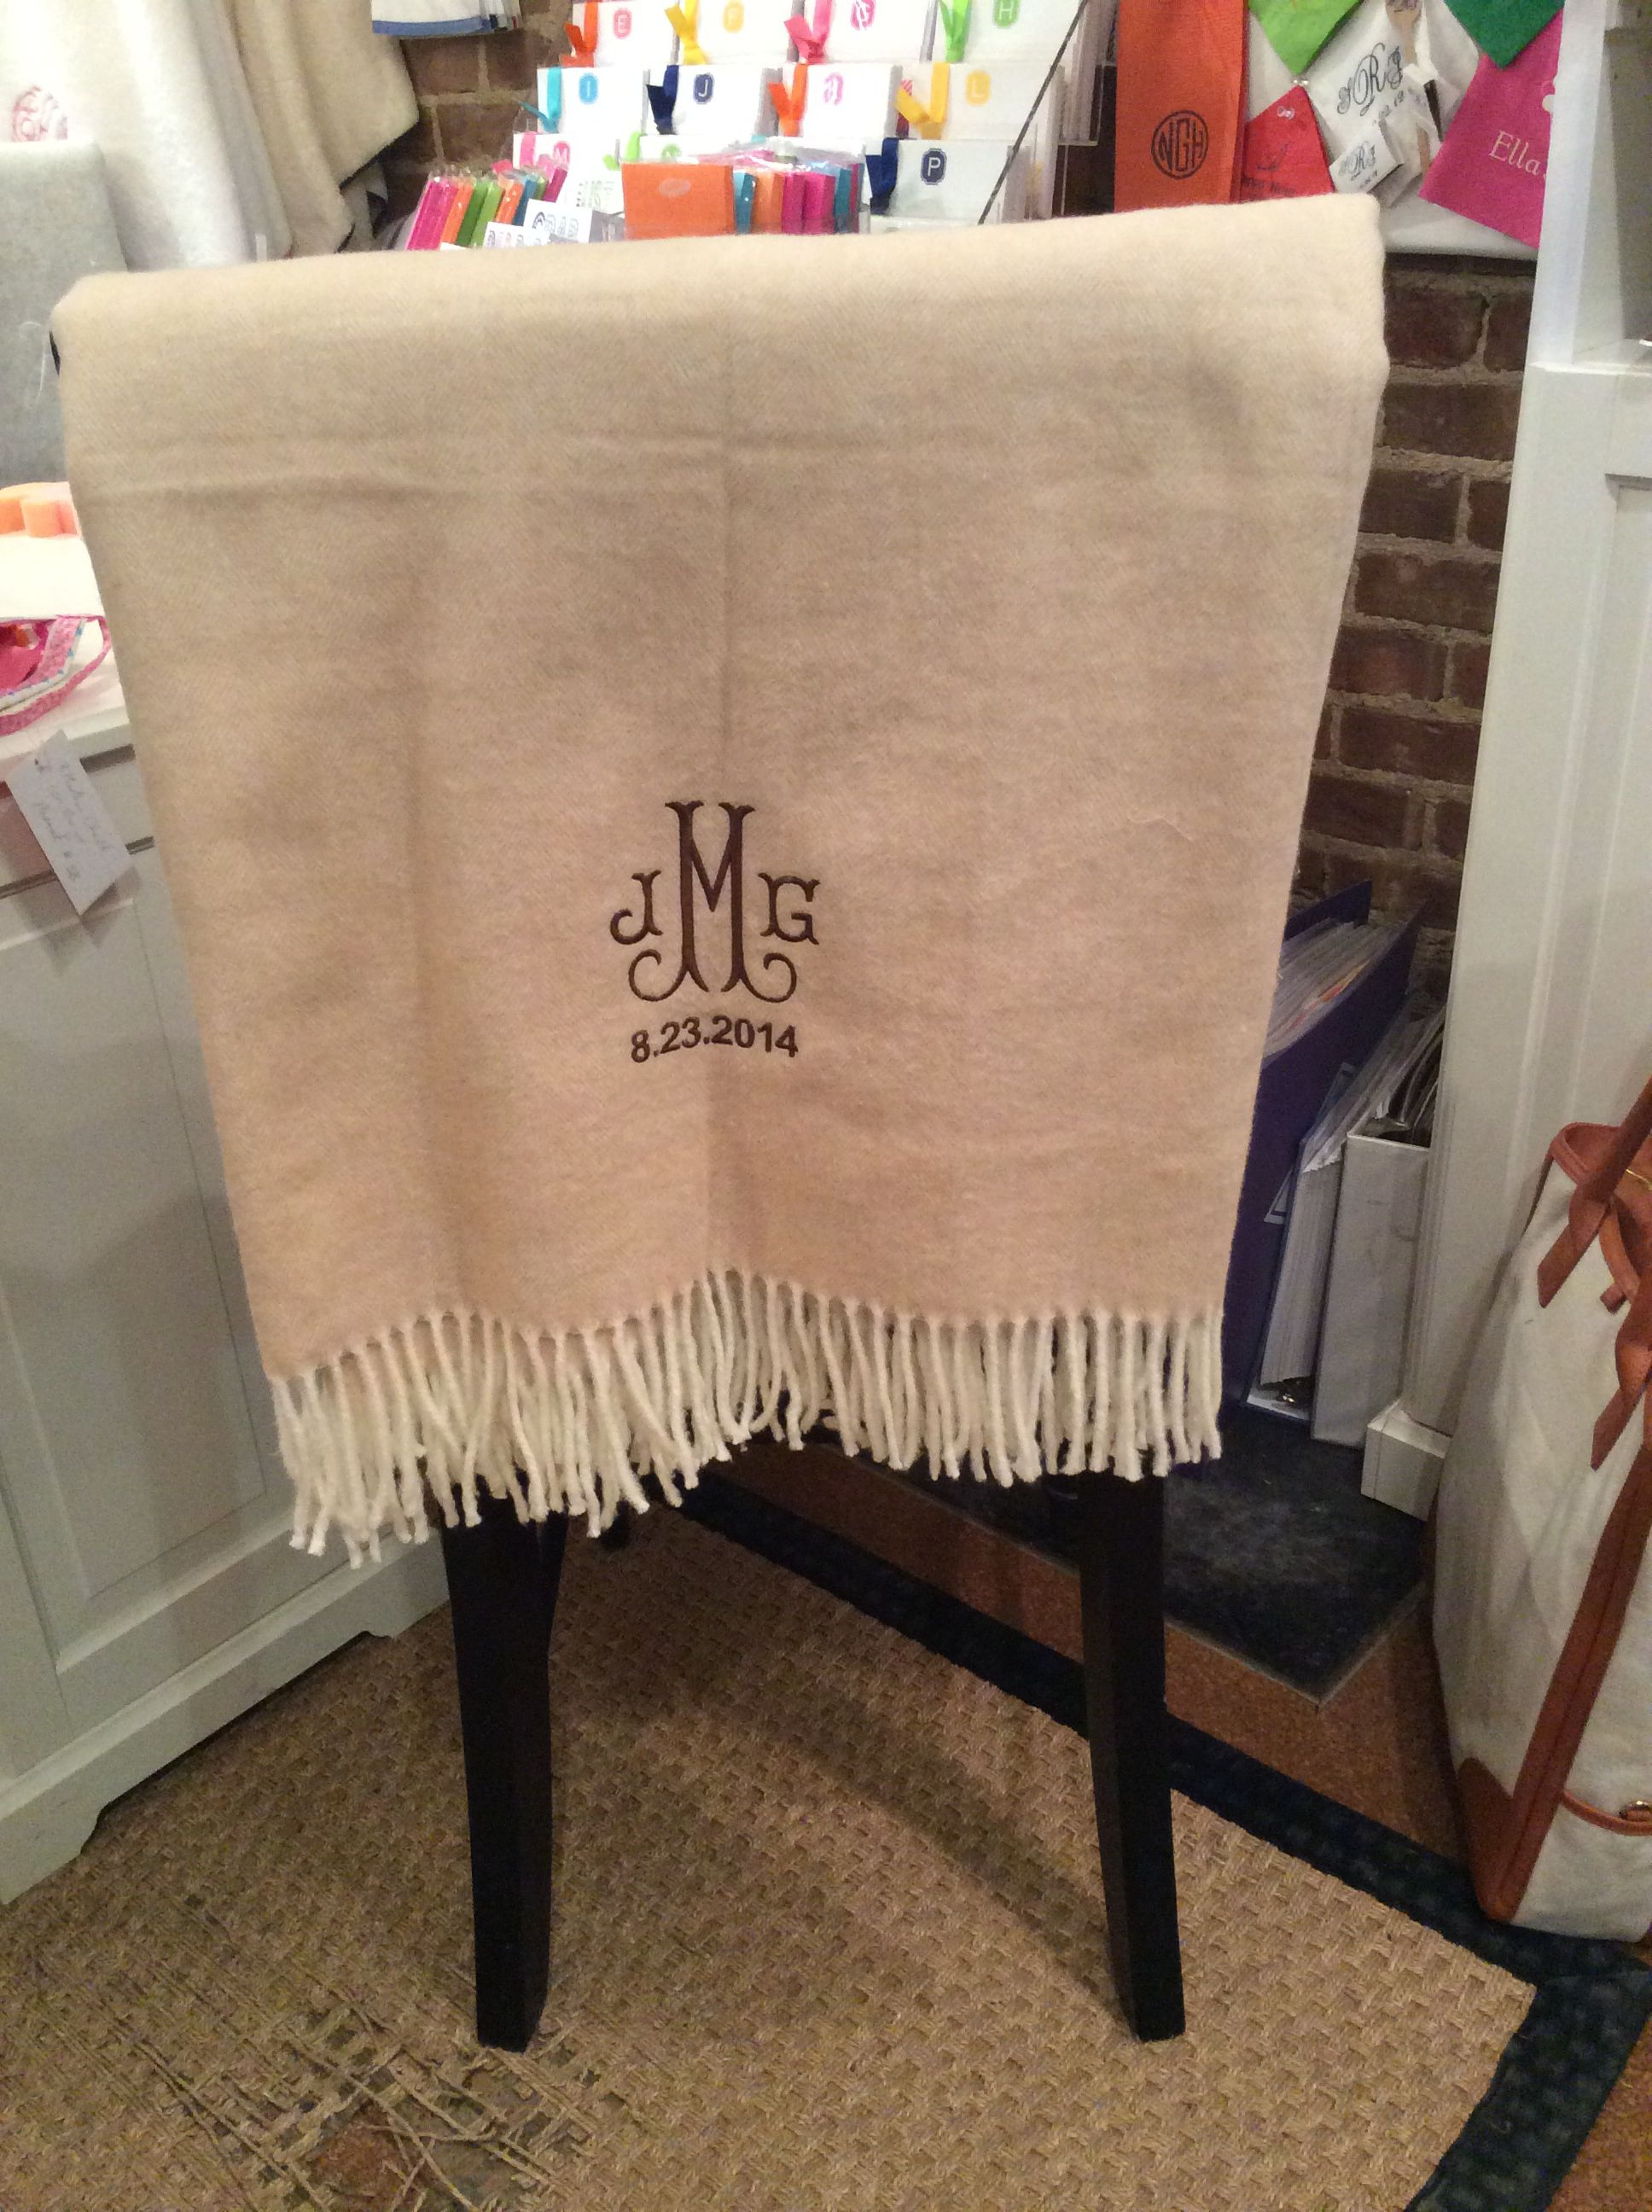 Beautiful monogrammed blanket with wedding date from Monograms off Madison